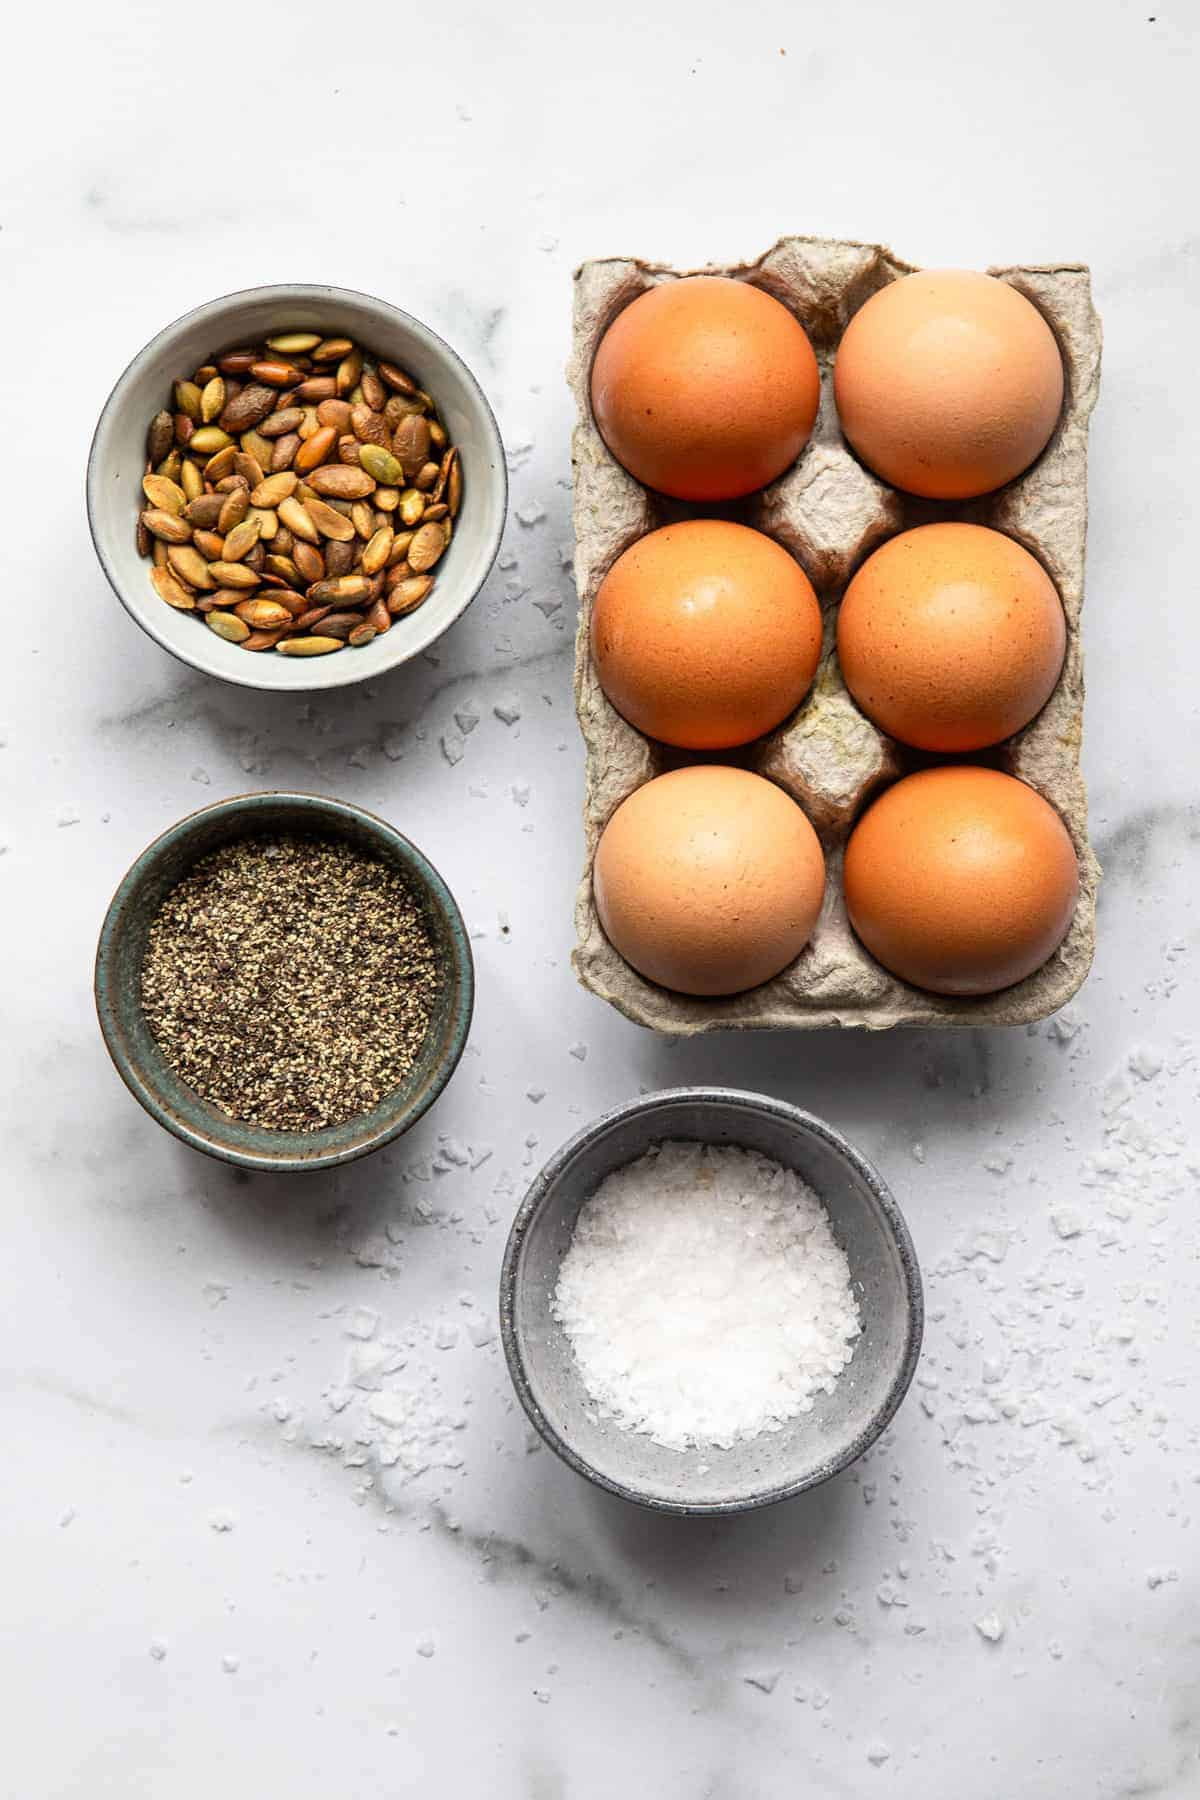 ingredients to make a hard boiled egg snack on a table